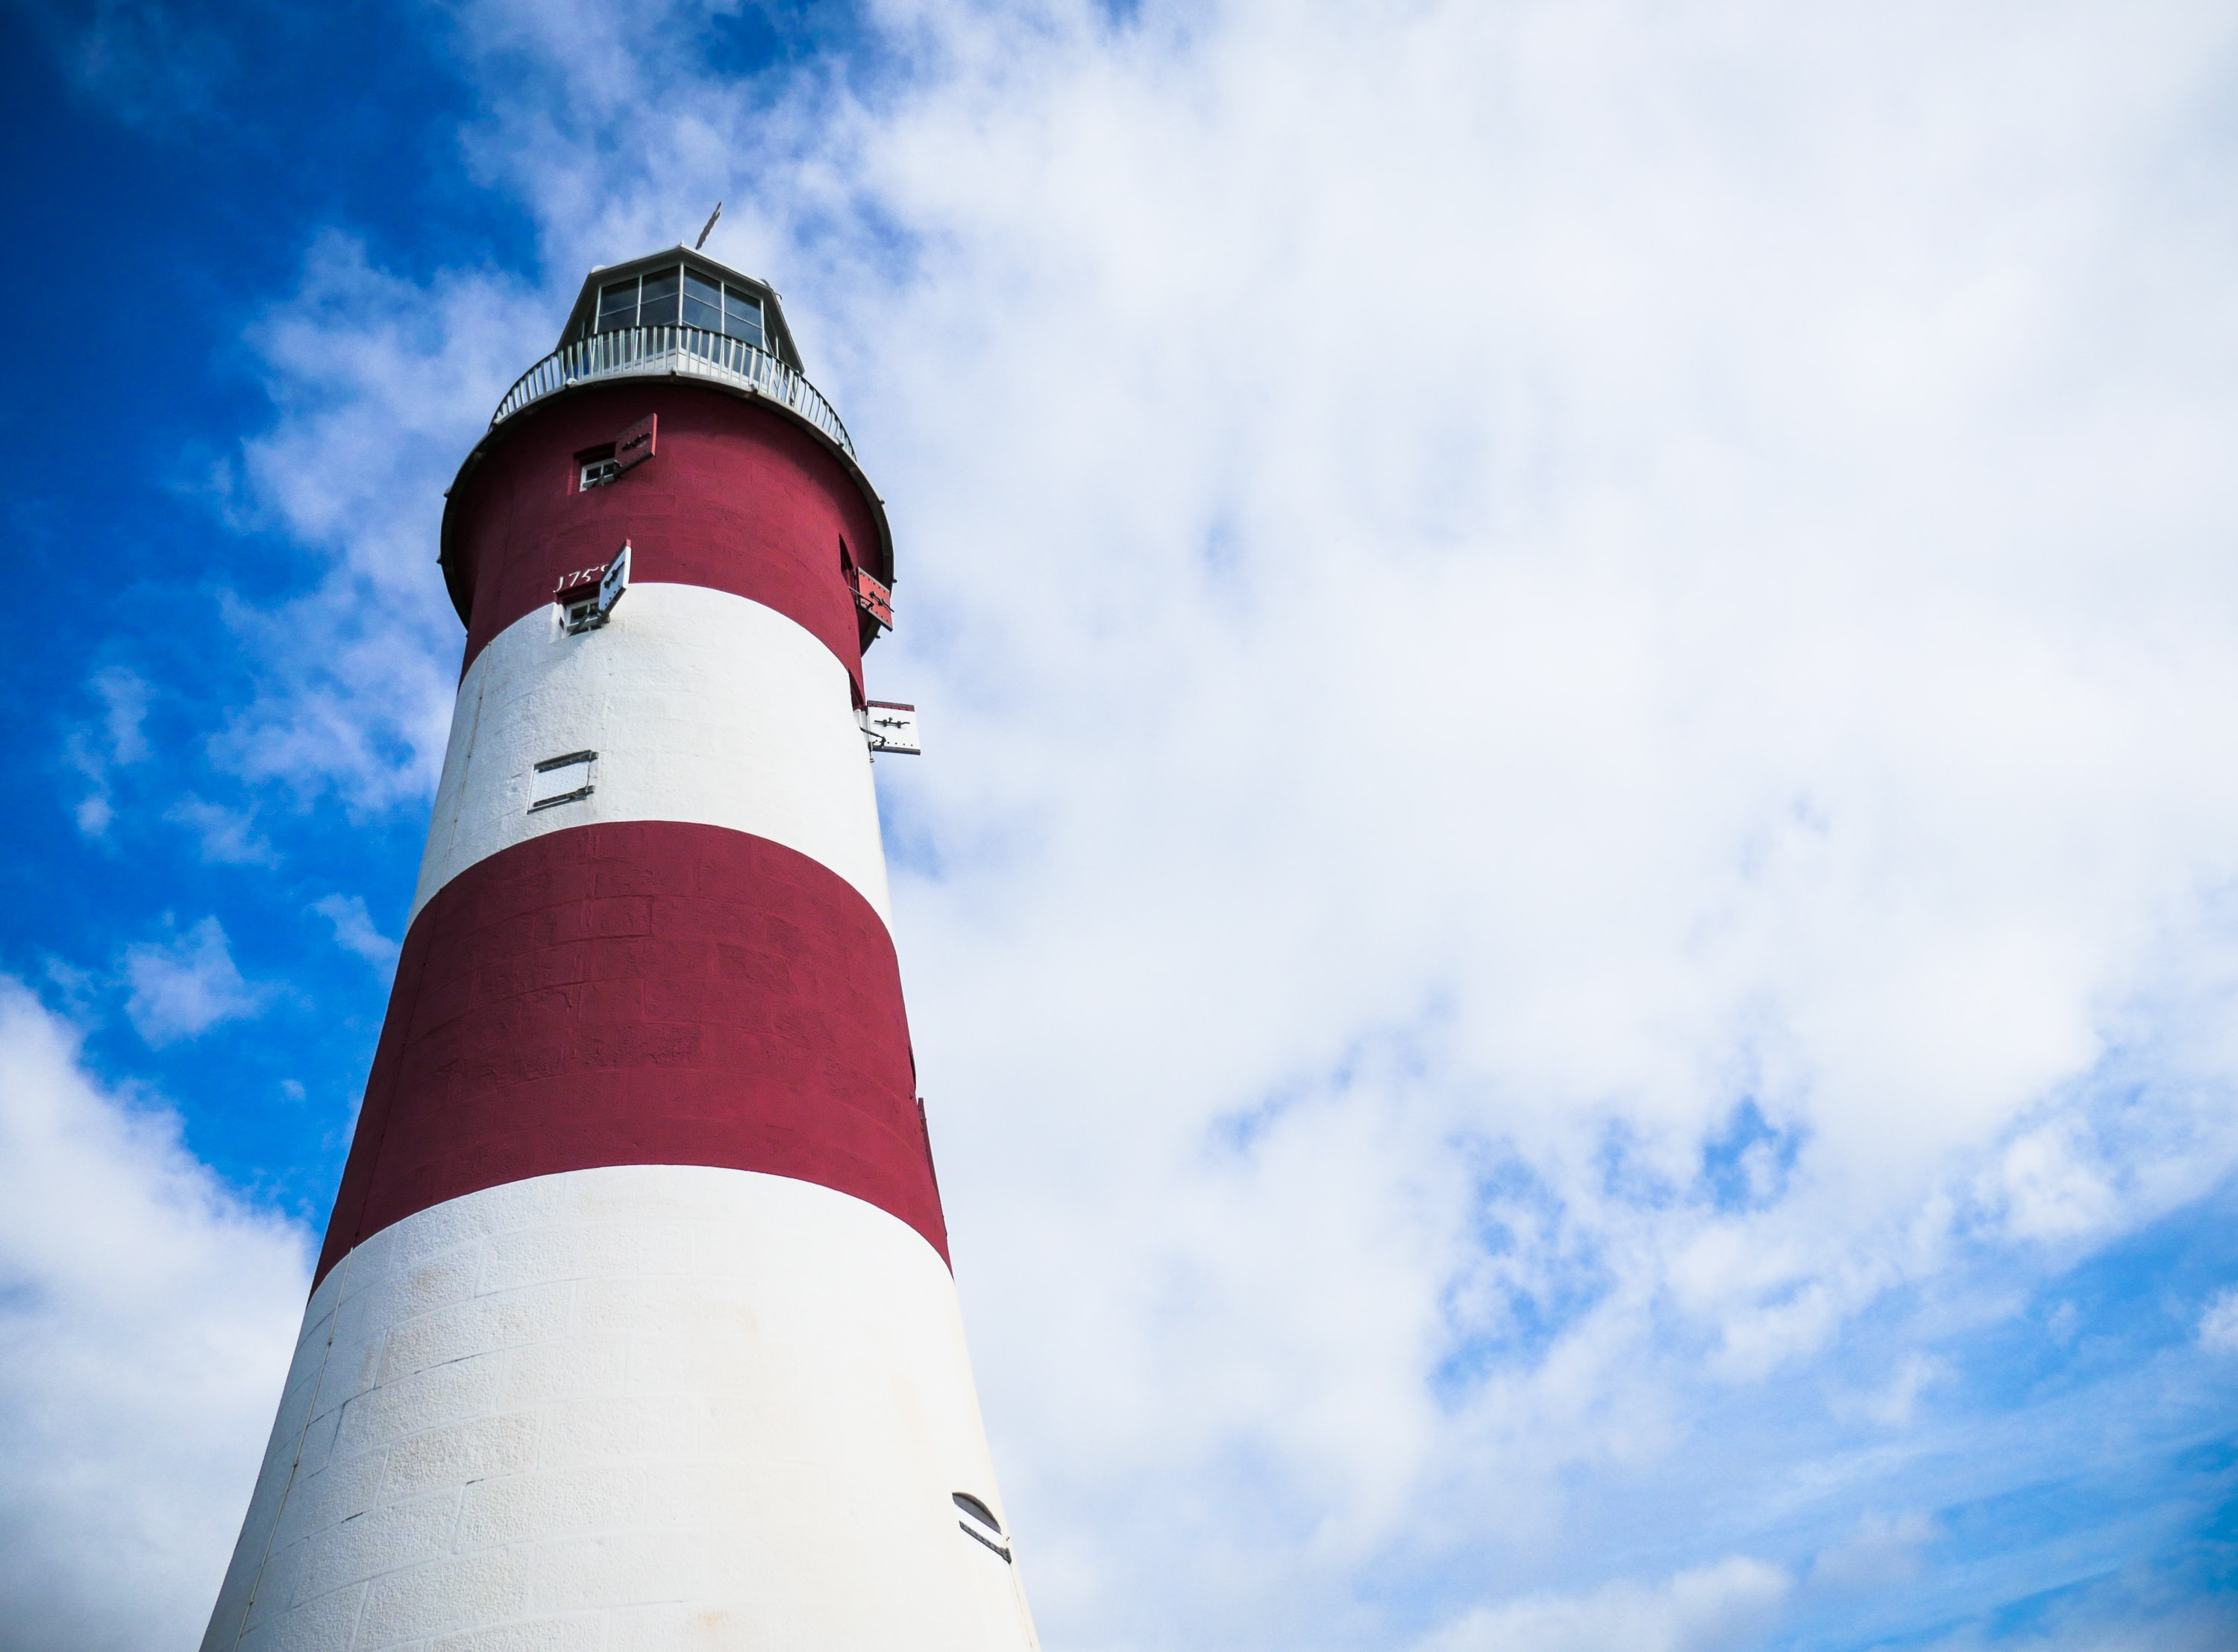 A lighthouse painted in red and white stripes